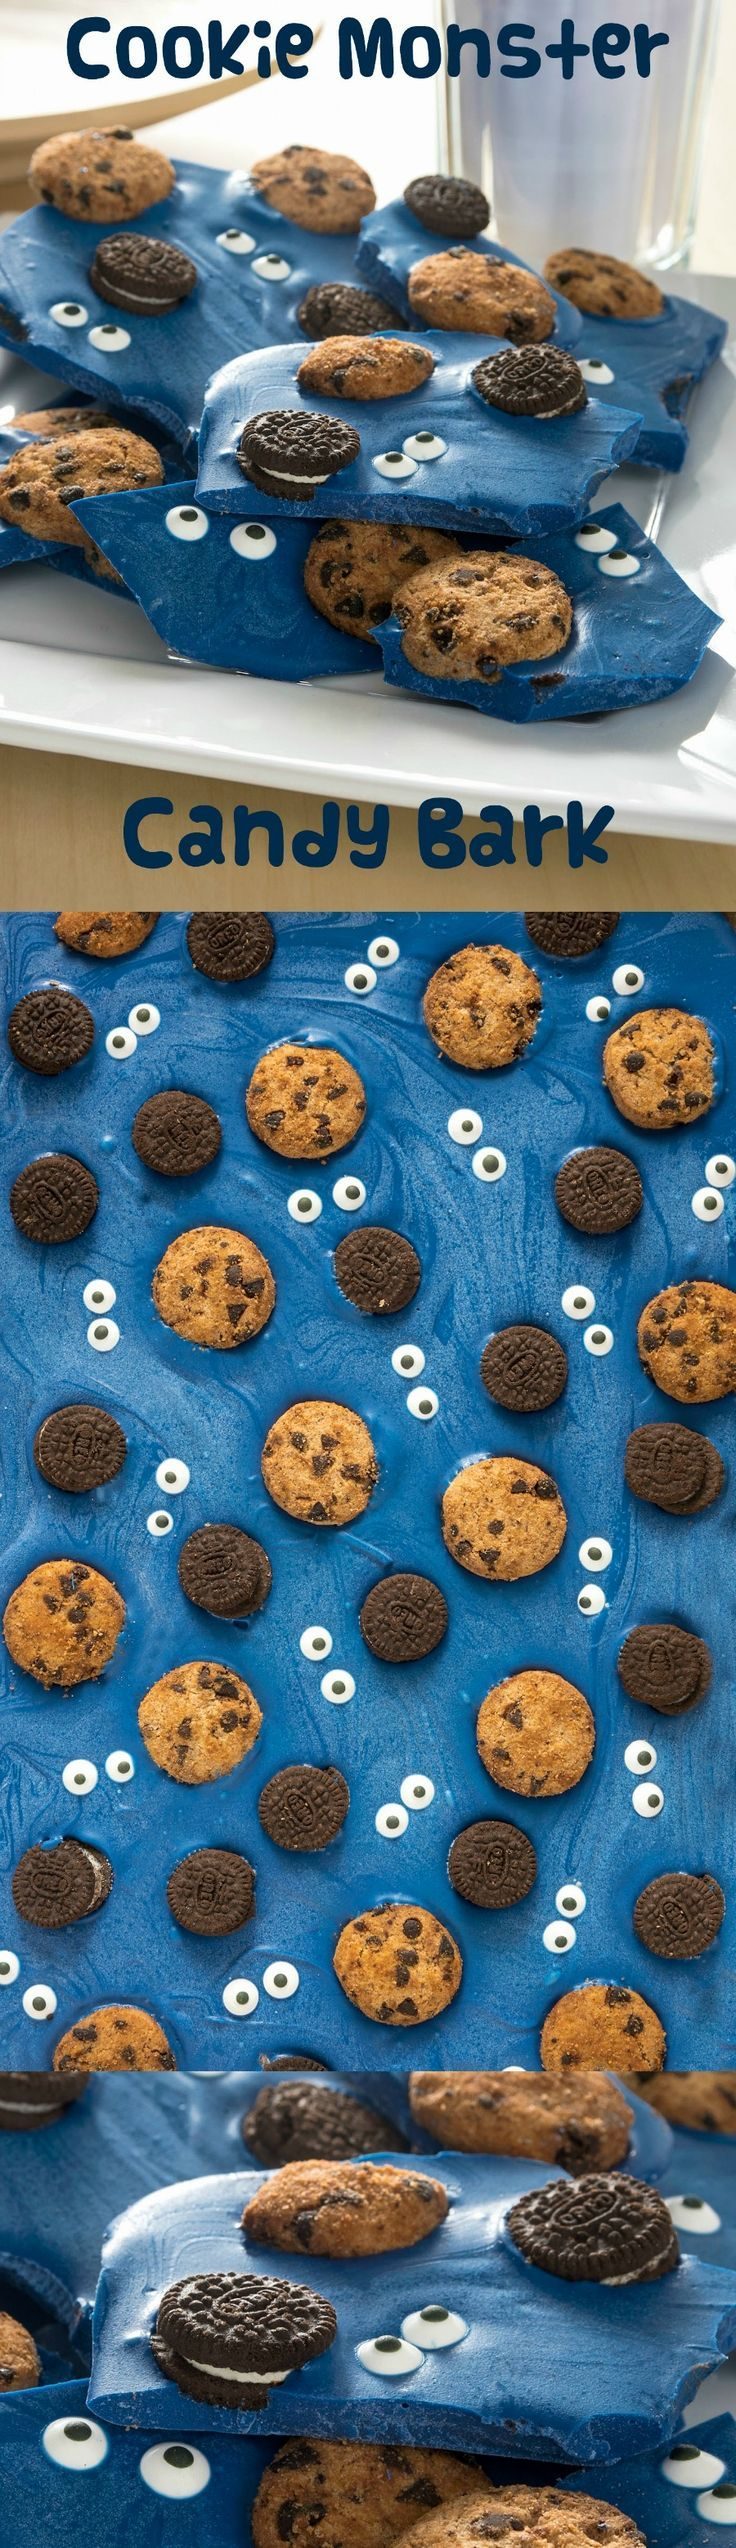 Are you a fan of Cookie Monster? Make this delicious candy bark loaded with chocolate chip cookies and Oreos. SO easy and fun for parties!